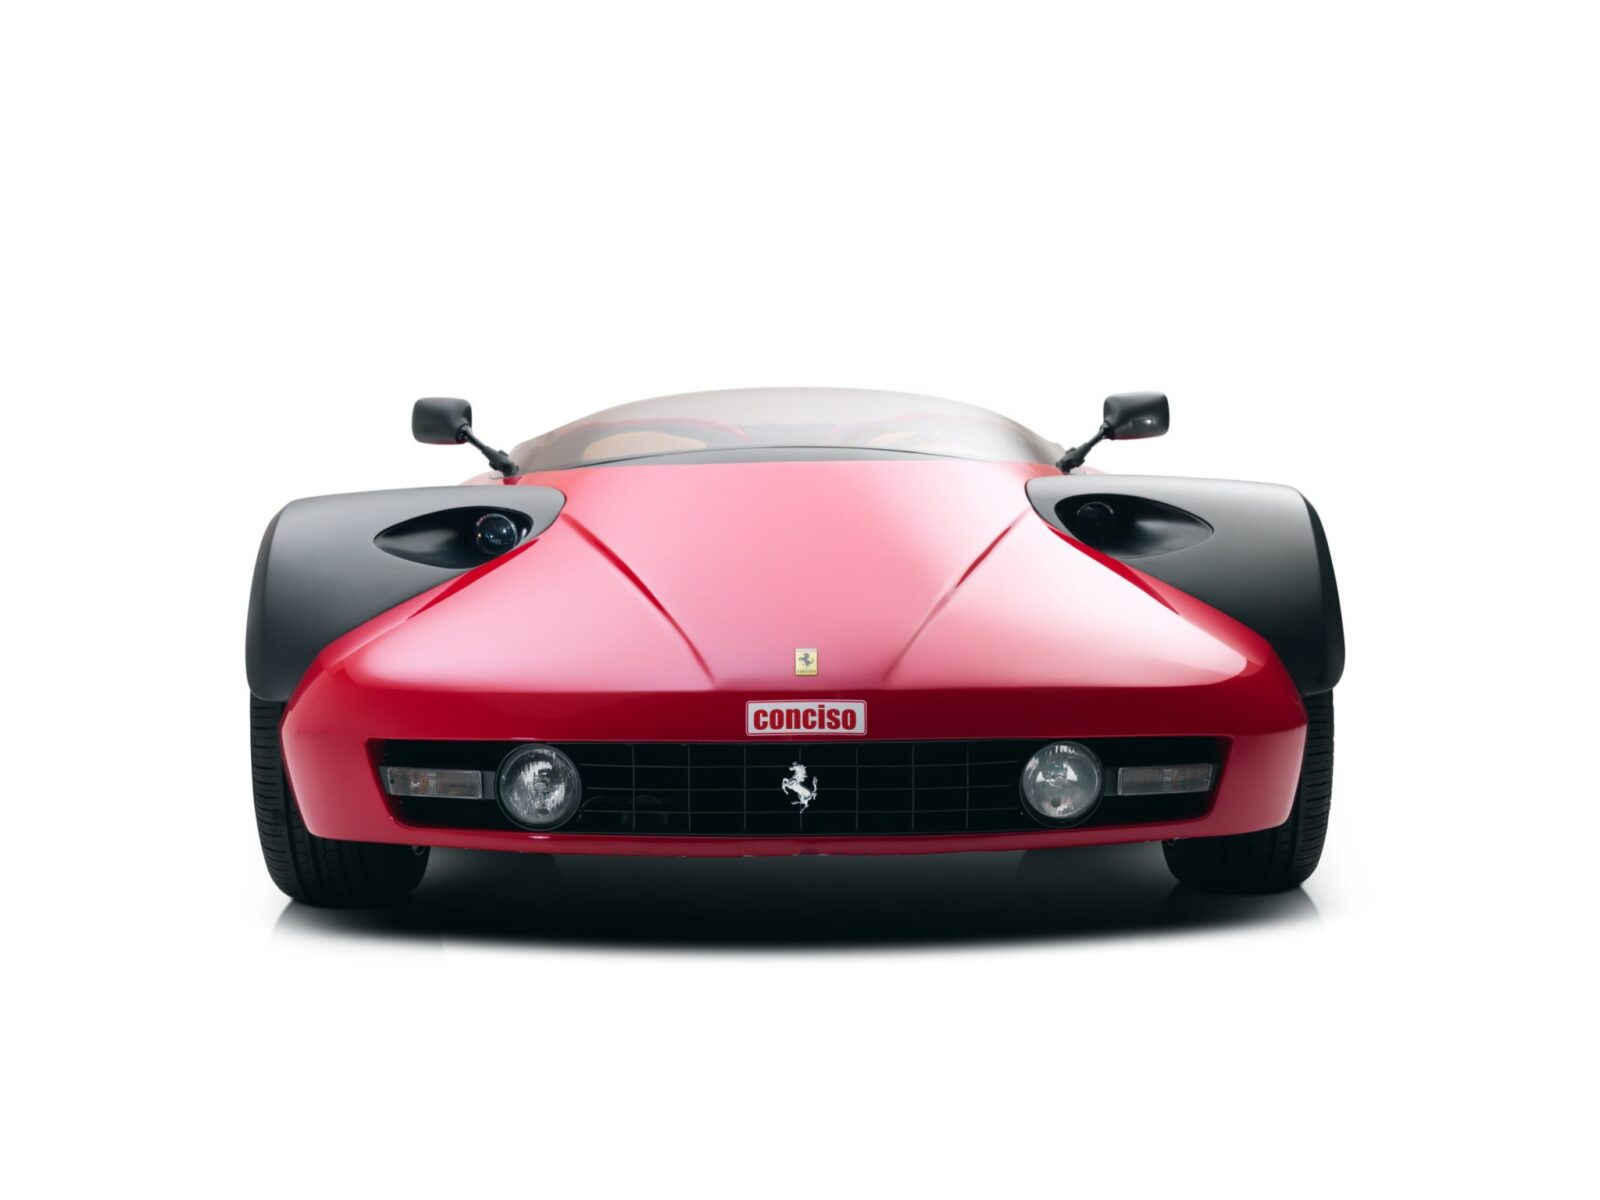 ferrari 328 conciso concept car 27 1600x1200 - Only One Ever Made: 1989 Ferrari 328 Conciso